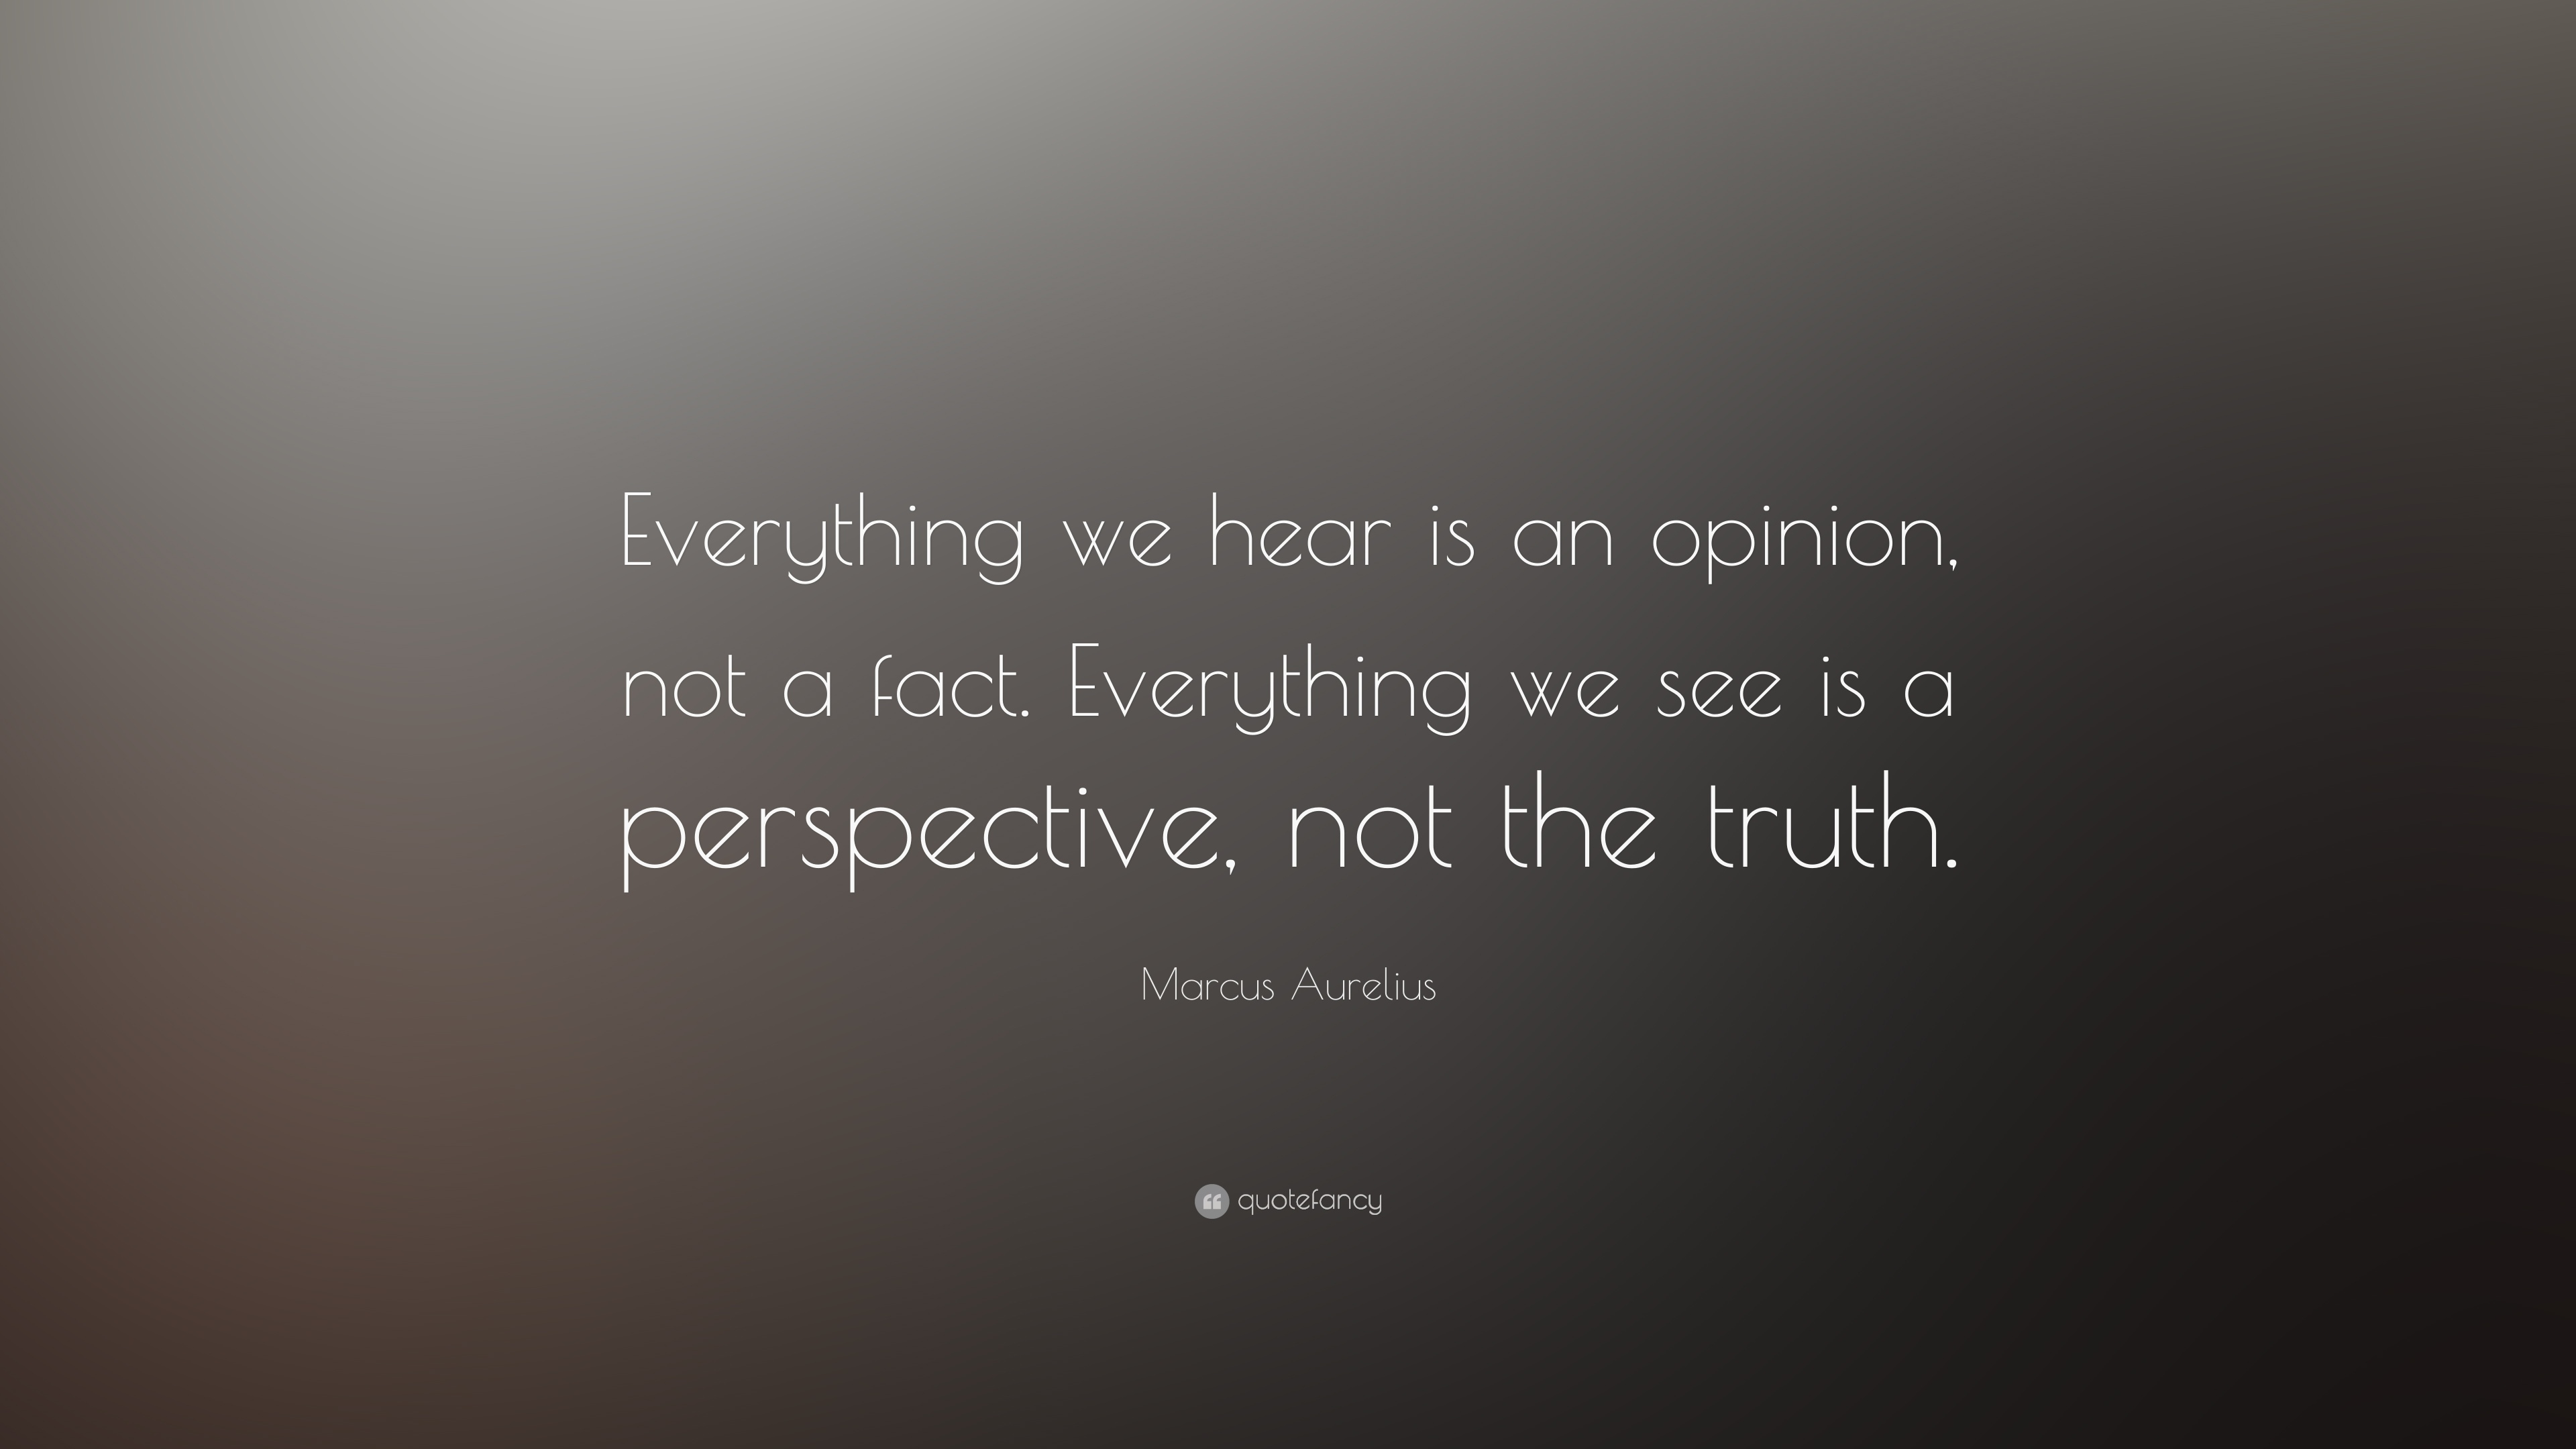 Dalai Lama Quotes Wallpapers Marcus Aurelius Quote Everything We Hear Is An Opinion